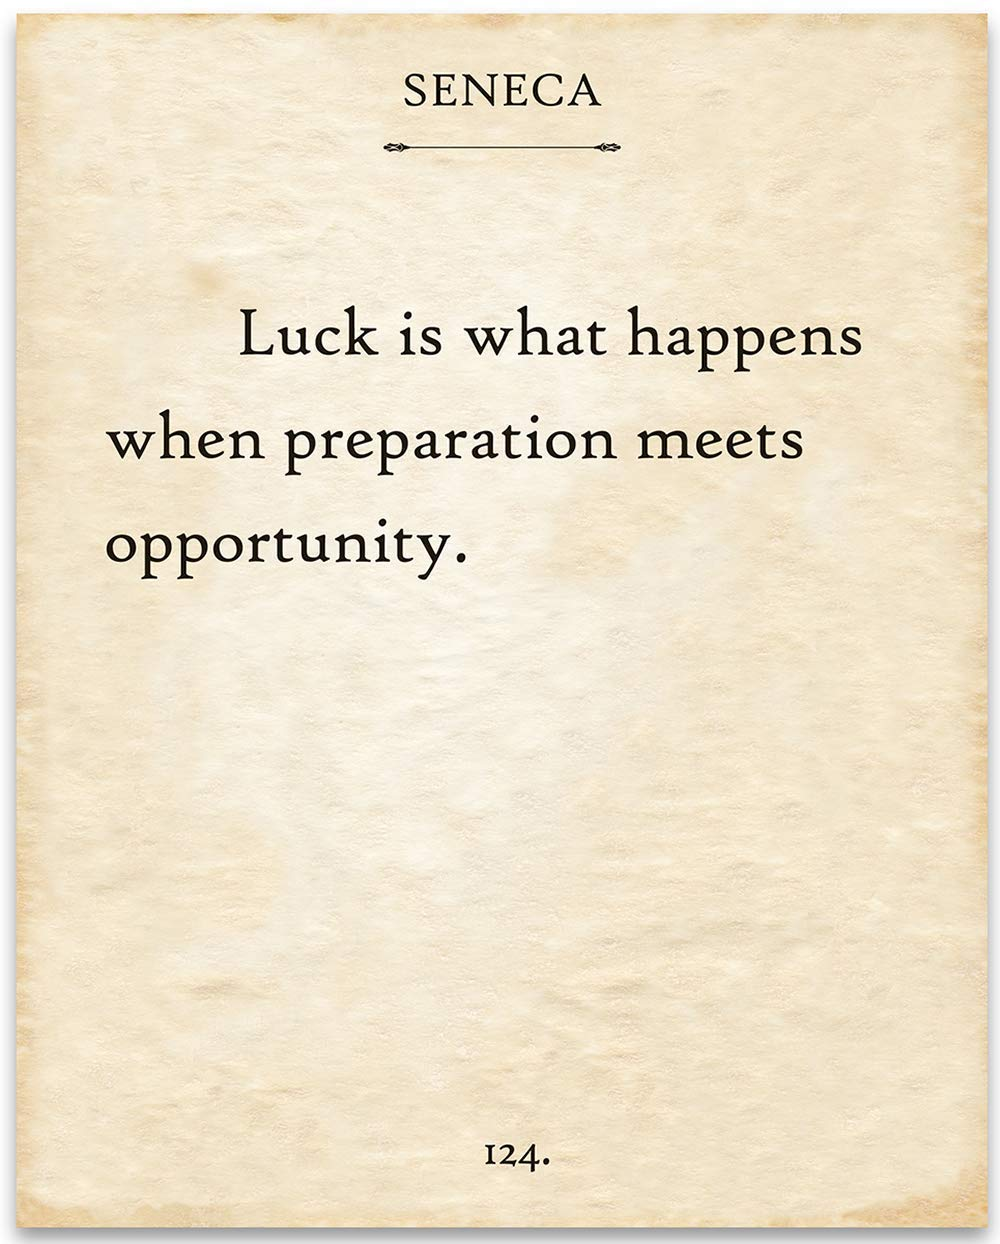 Seneca Quote - Luck is What Preparation Happens 70% OFF Outlet Tulsa Mall Meets When Oppor